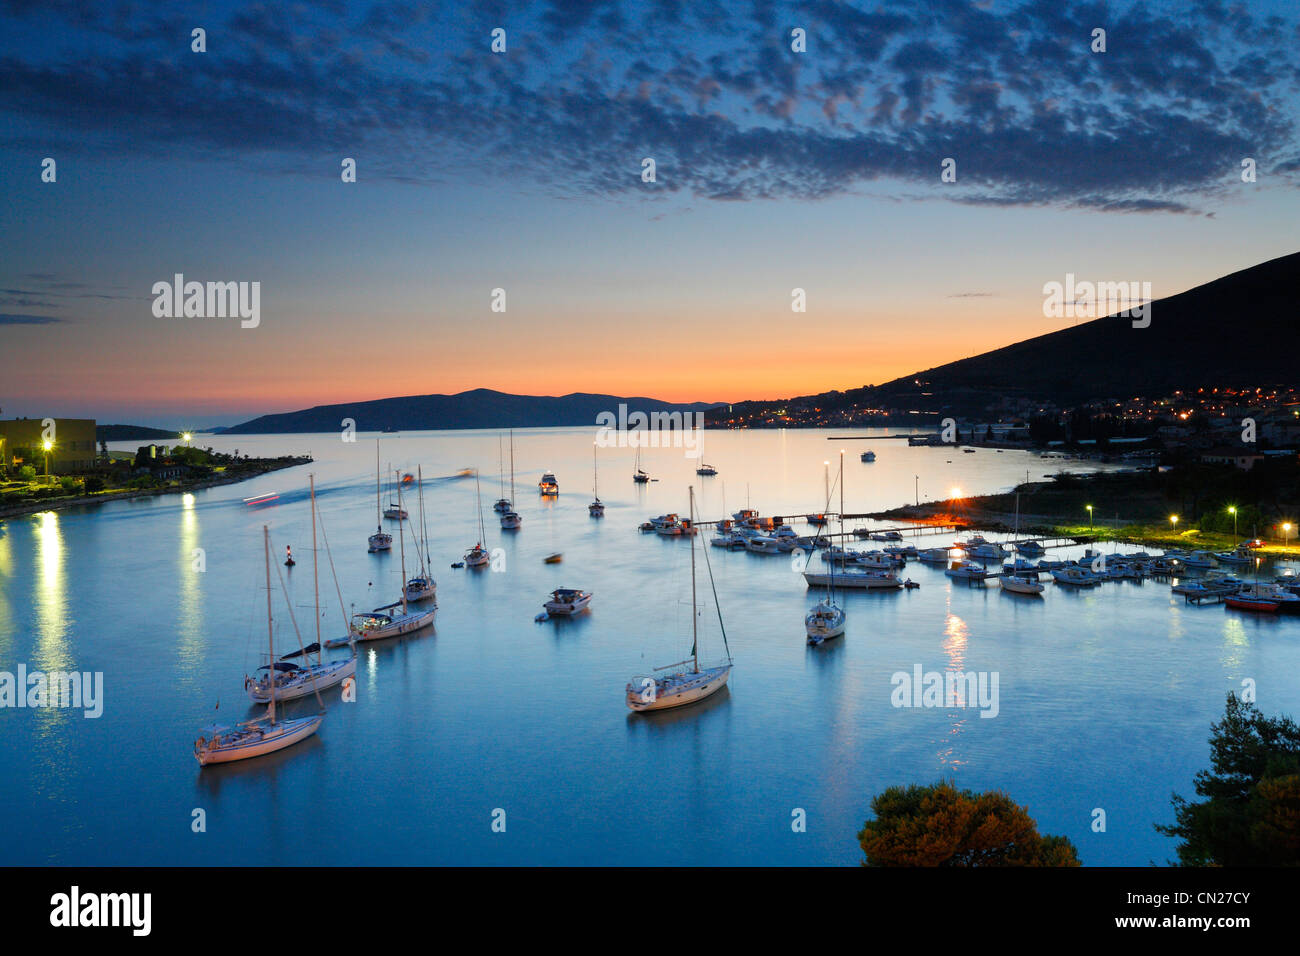 Sailboats docking by old town Trogir in Dalmatia at sunset. - Stock Image